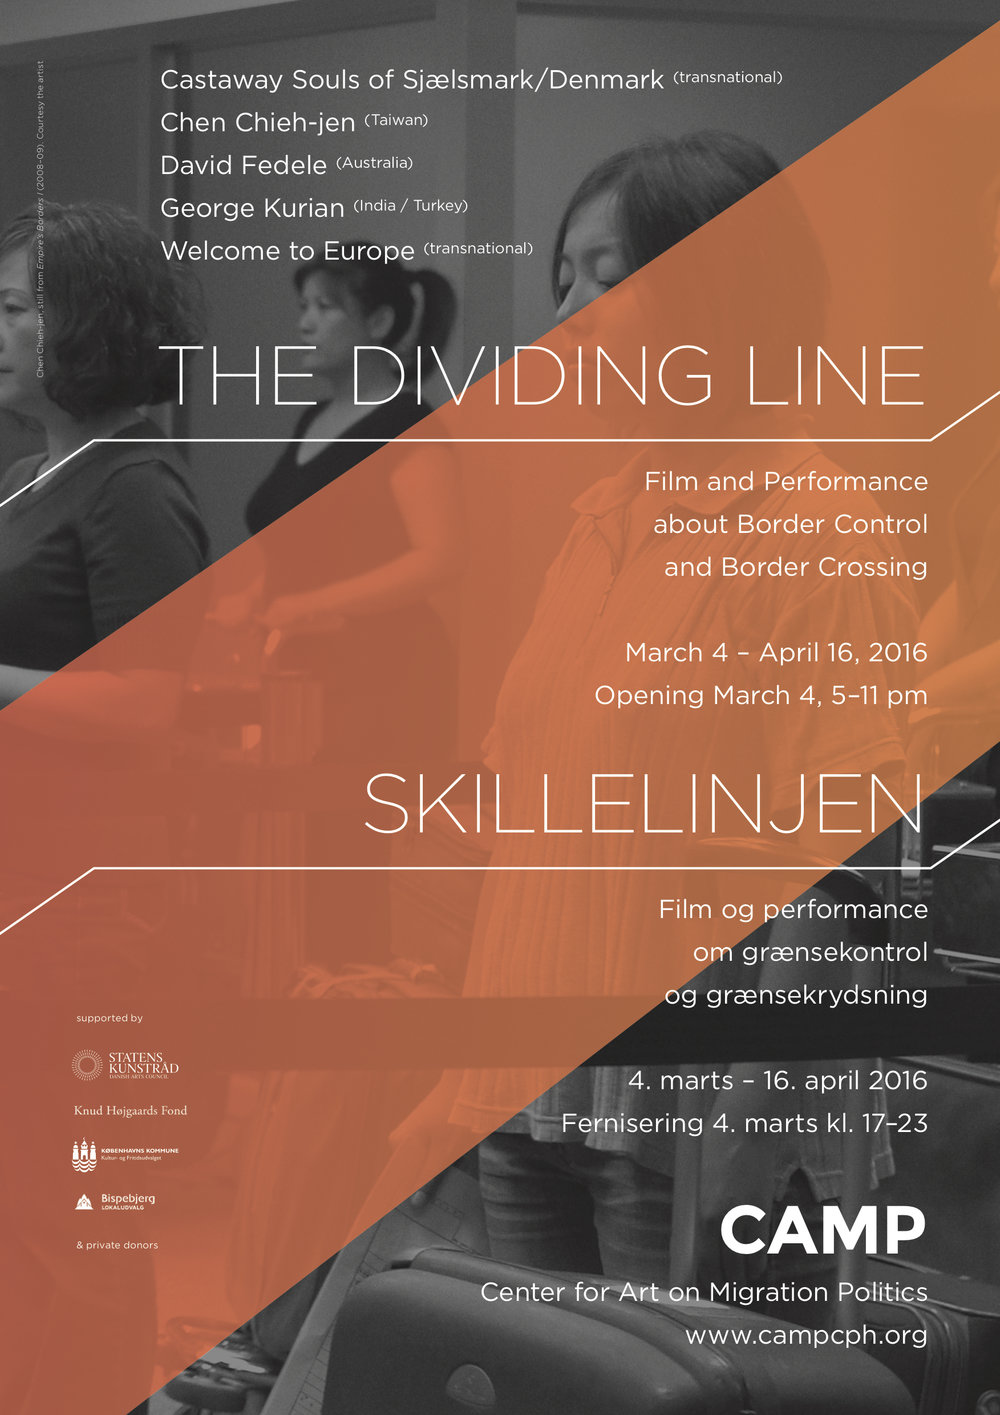 TheDividingLine-Poster.jpg